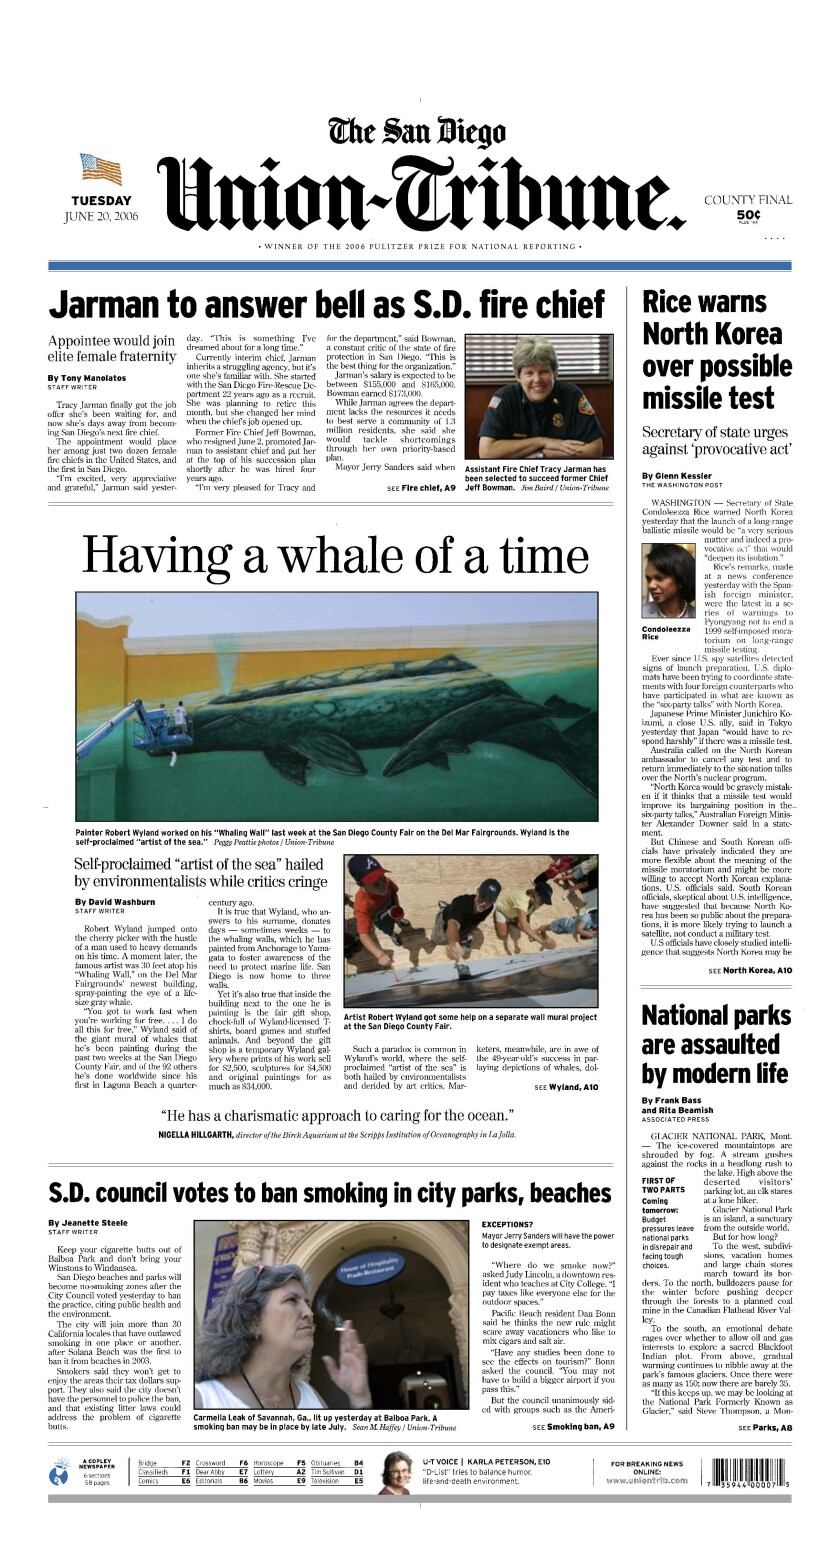 Front page of The San Diego Union-Tribune, June 20, 2006.